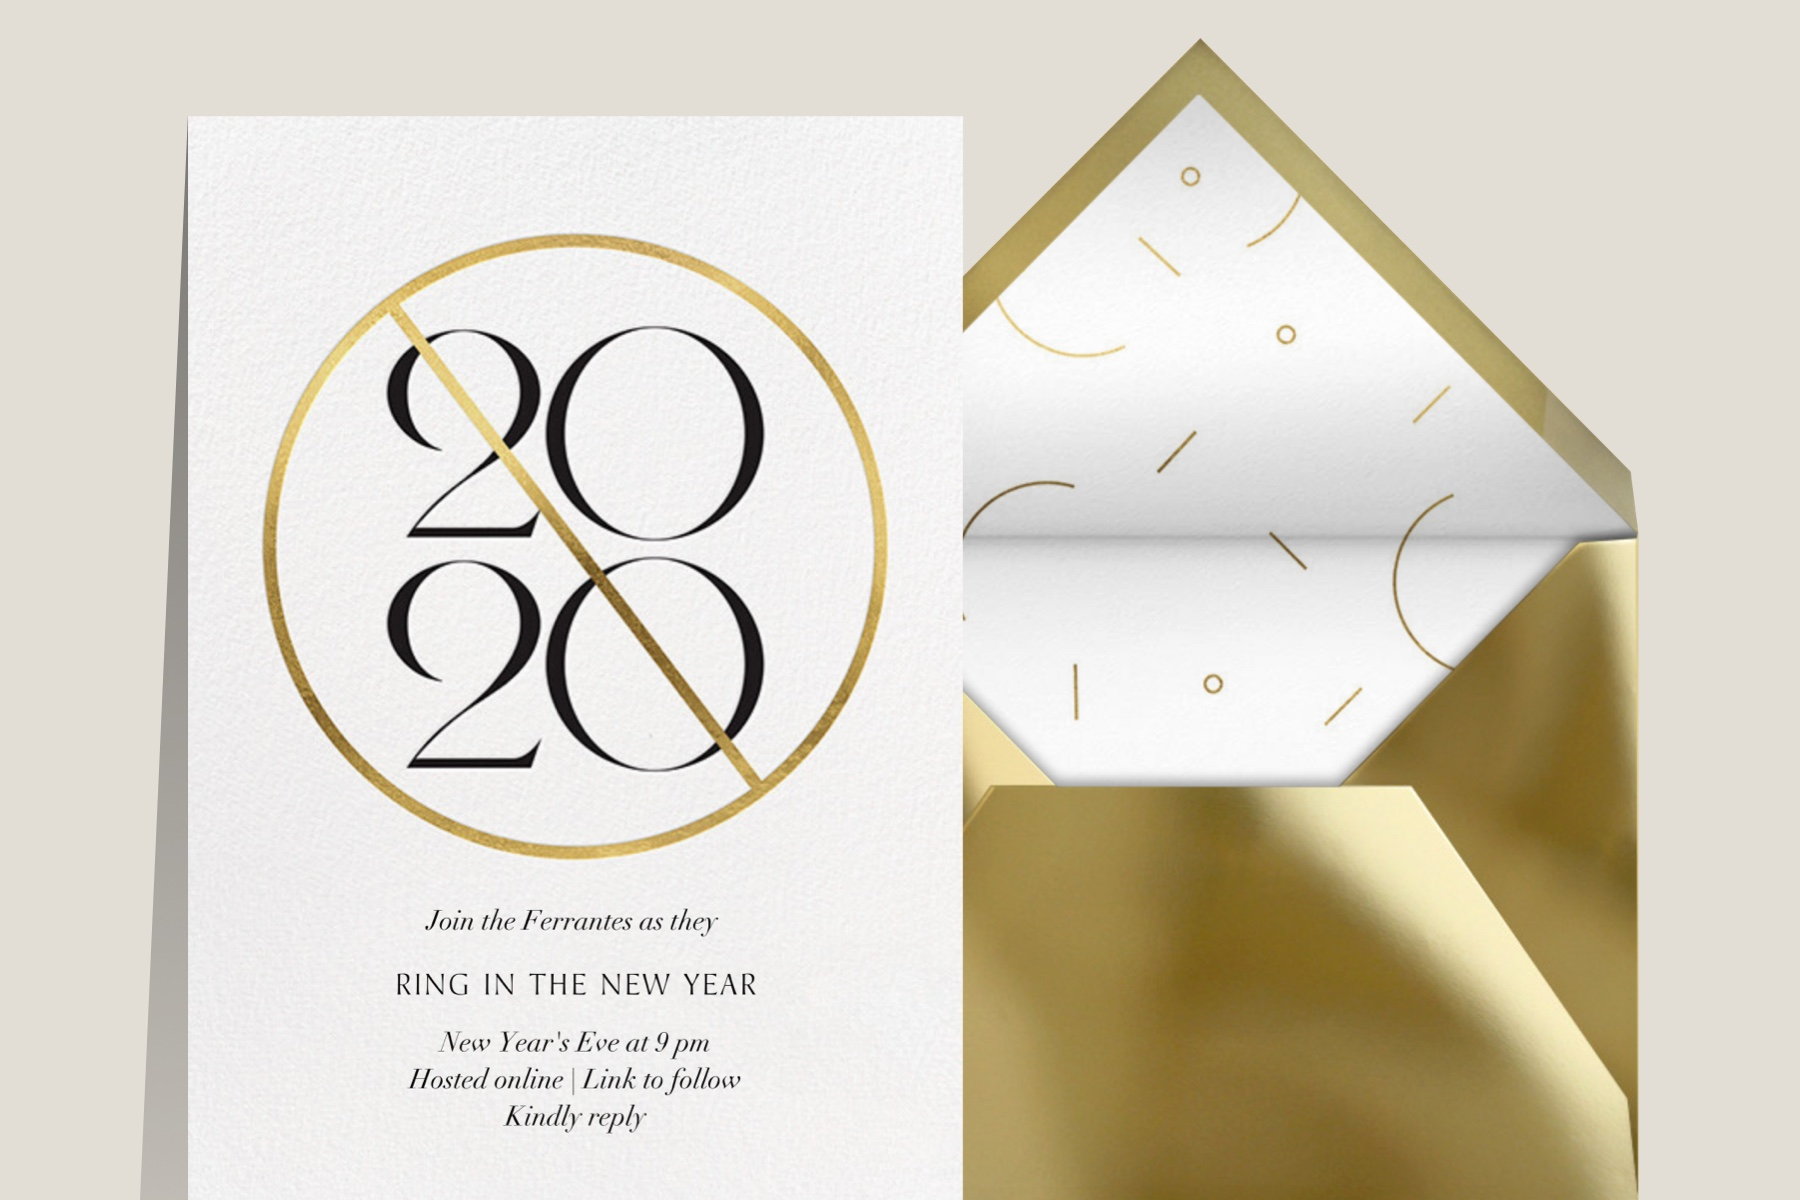 2020 New Years Eve party invitation with gold 2020 graphic